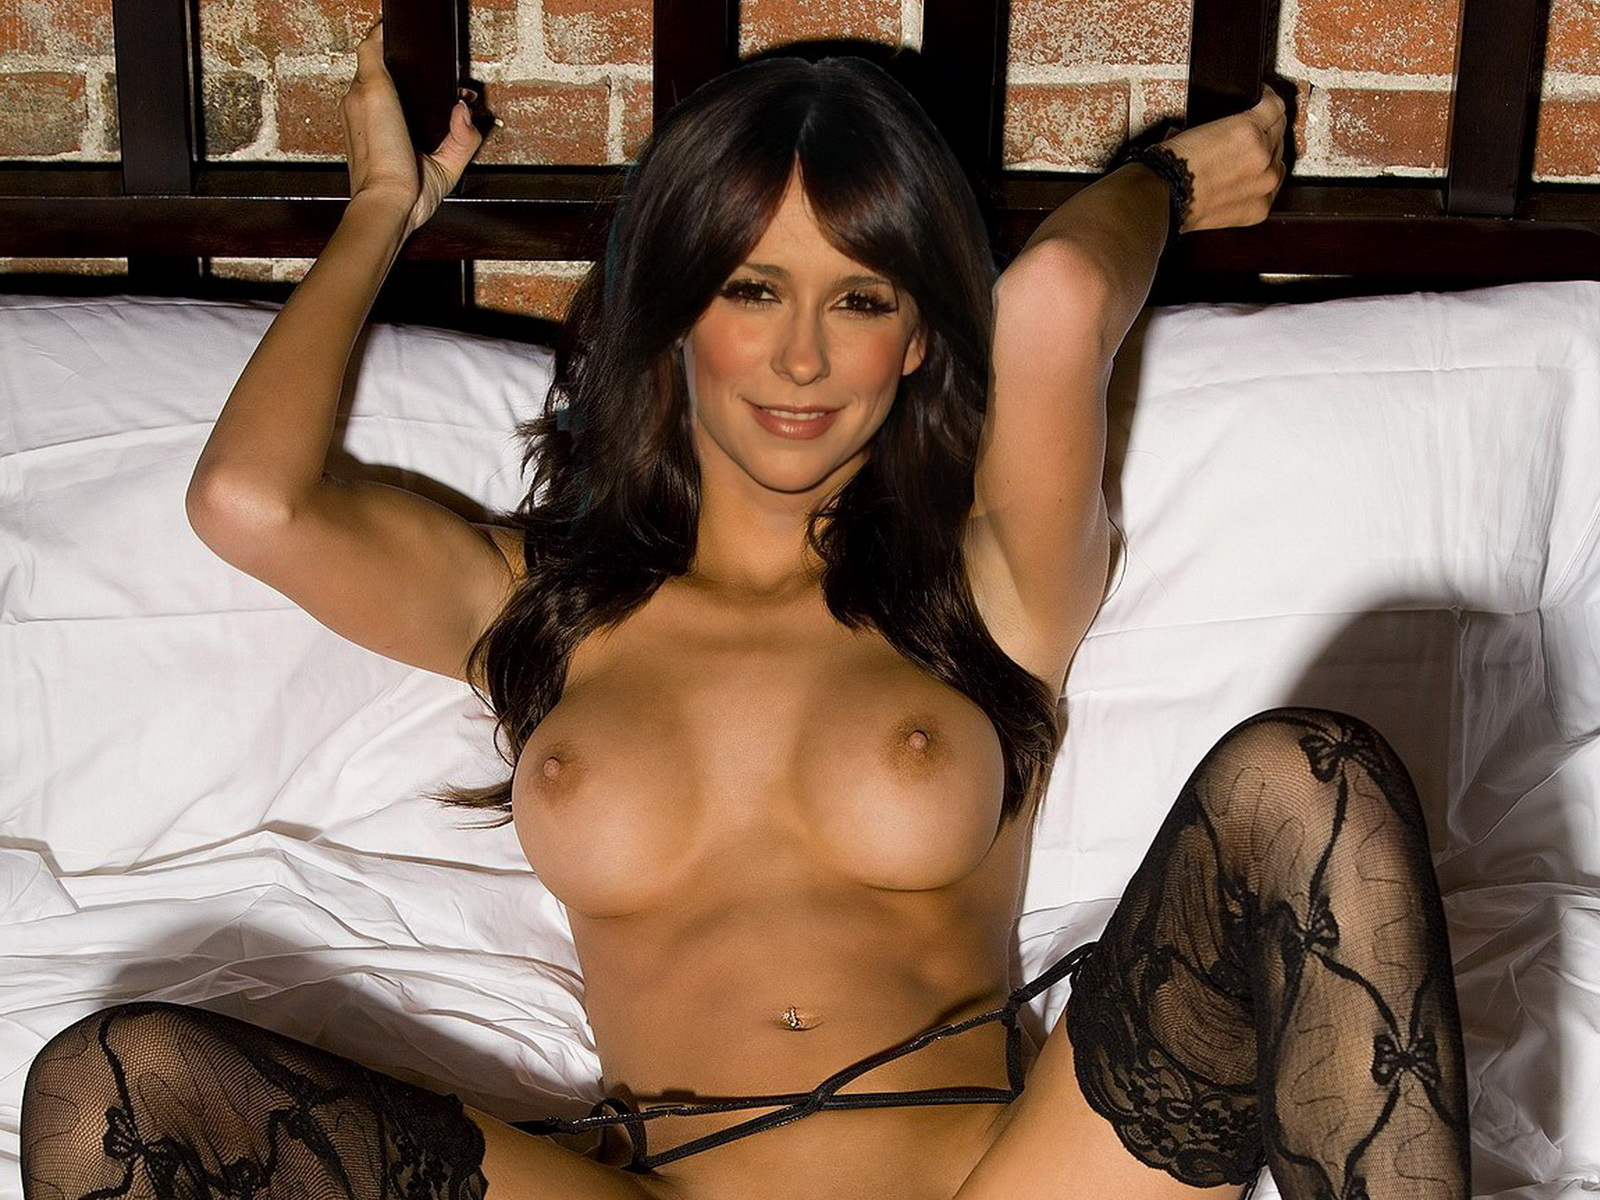 http://1.bp.blogspot.com/-X-c6o5eDjP4/Tx6nxovQWCI/AAAAAAAADp4/o5H2cfzDRic/s1600/Jennifer_Love_Hewitt_nude_on_the_bed_spread_legs_show_big_boobs_and_shaved_pussy.jpg